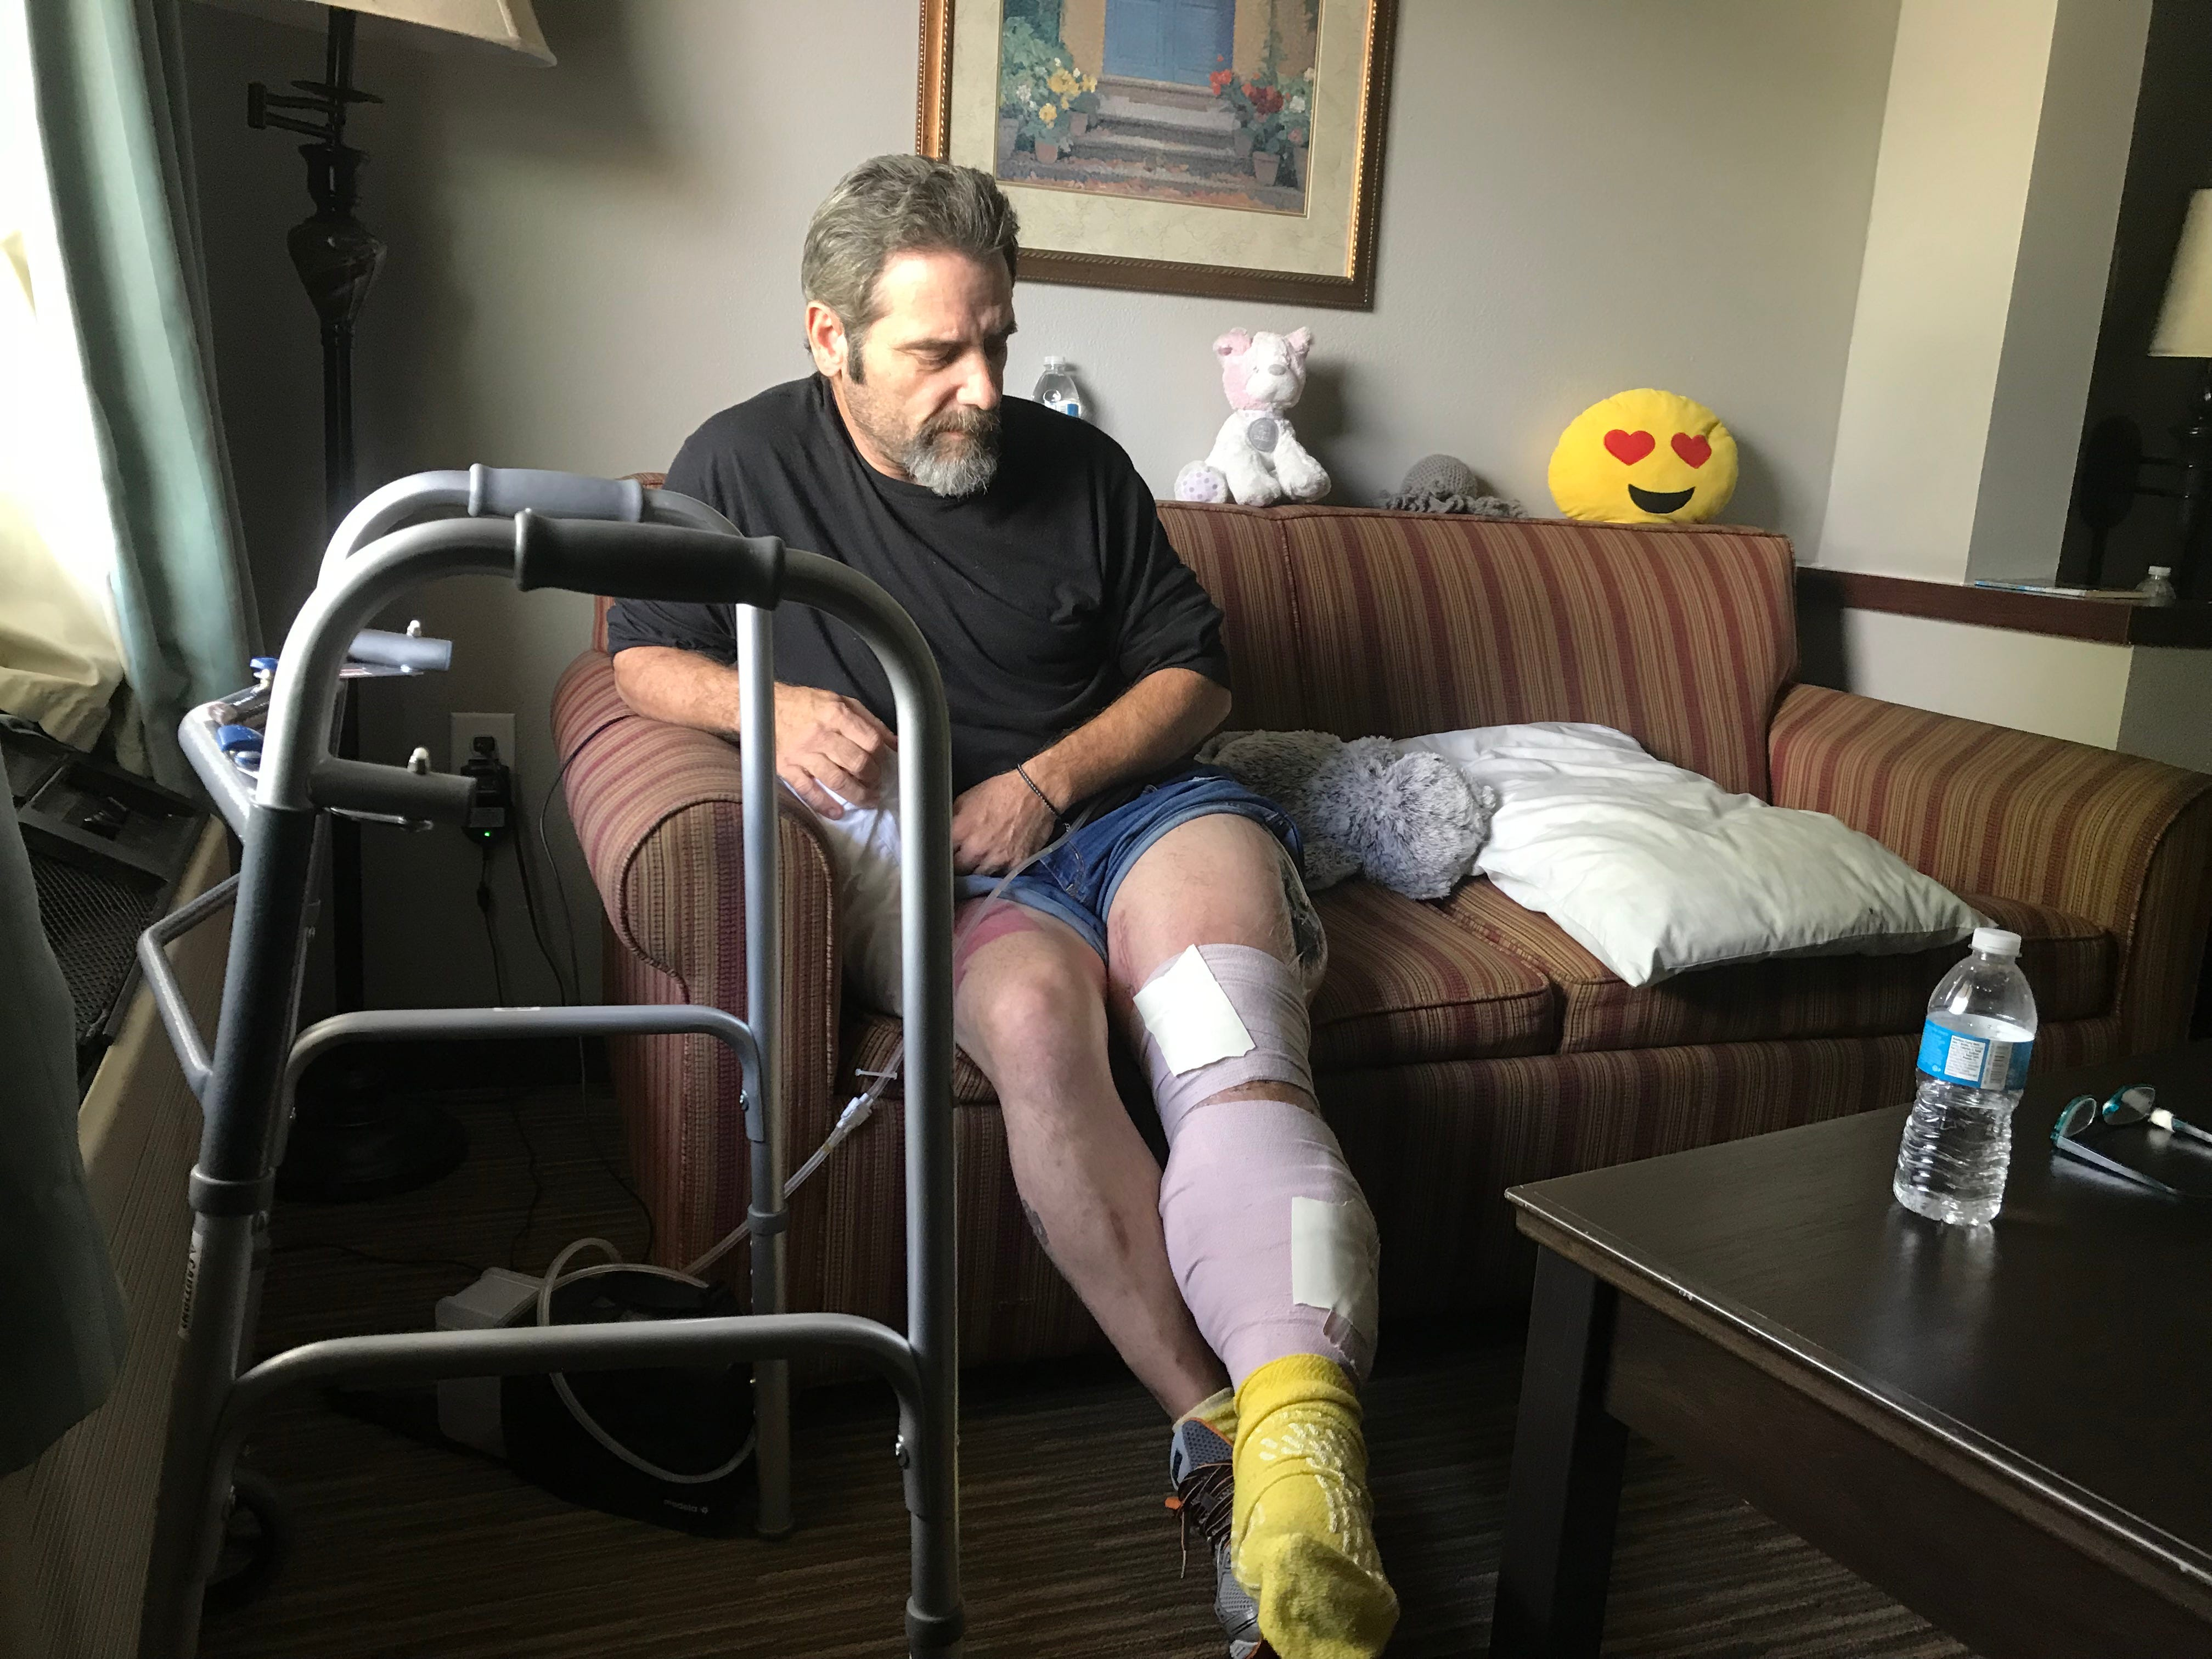 Terry Wadlow and his family wound up in Springfield following an accident that left his leg crushed and he was sent to Cox for treatment. They are from Oklahoma. He said he needs to be close to Cox South because he has doctor's appointments twice a week. The family says they can no longer pay their motel bill.